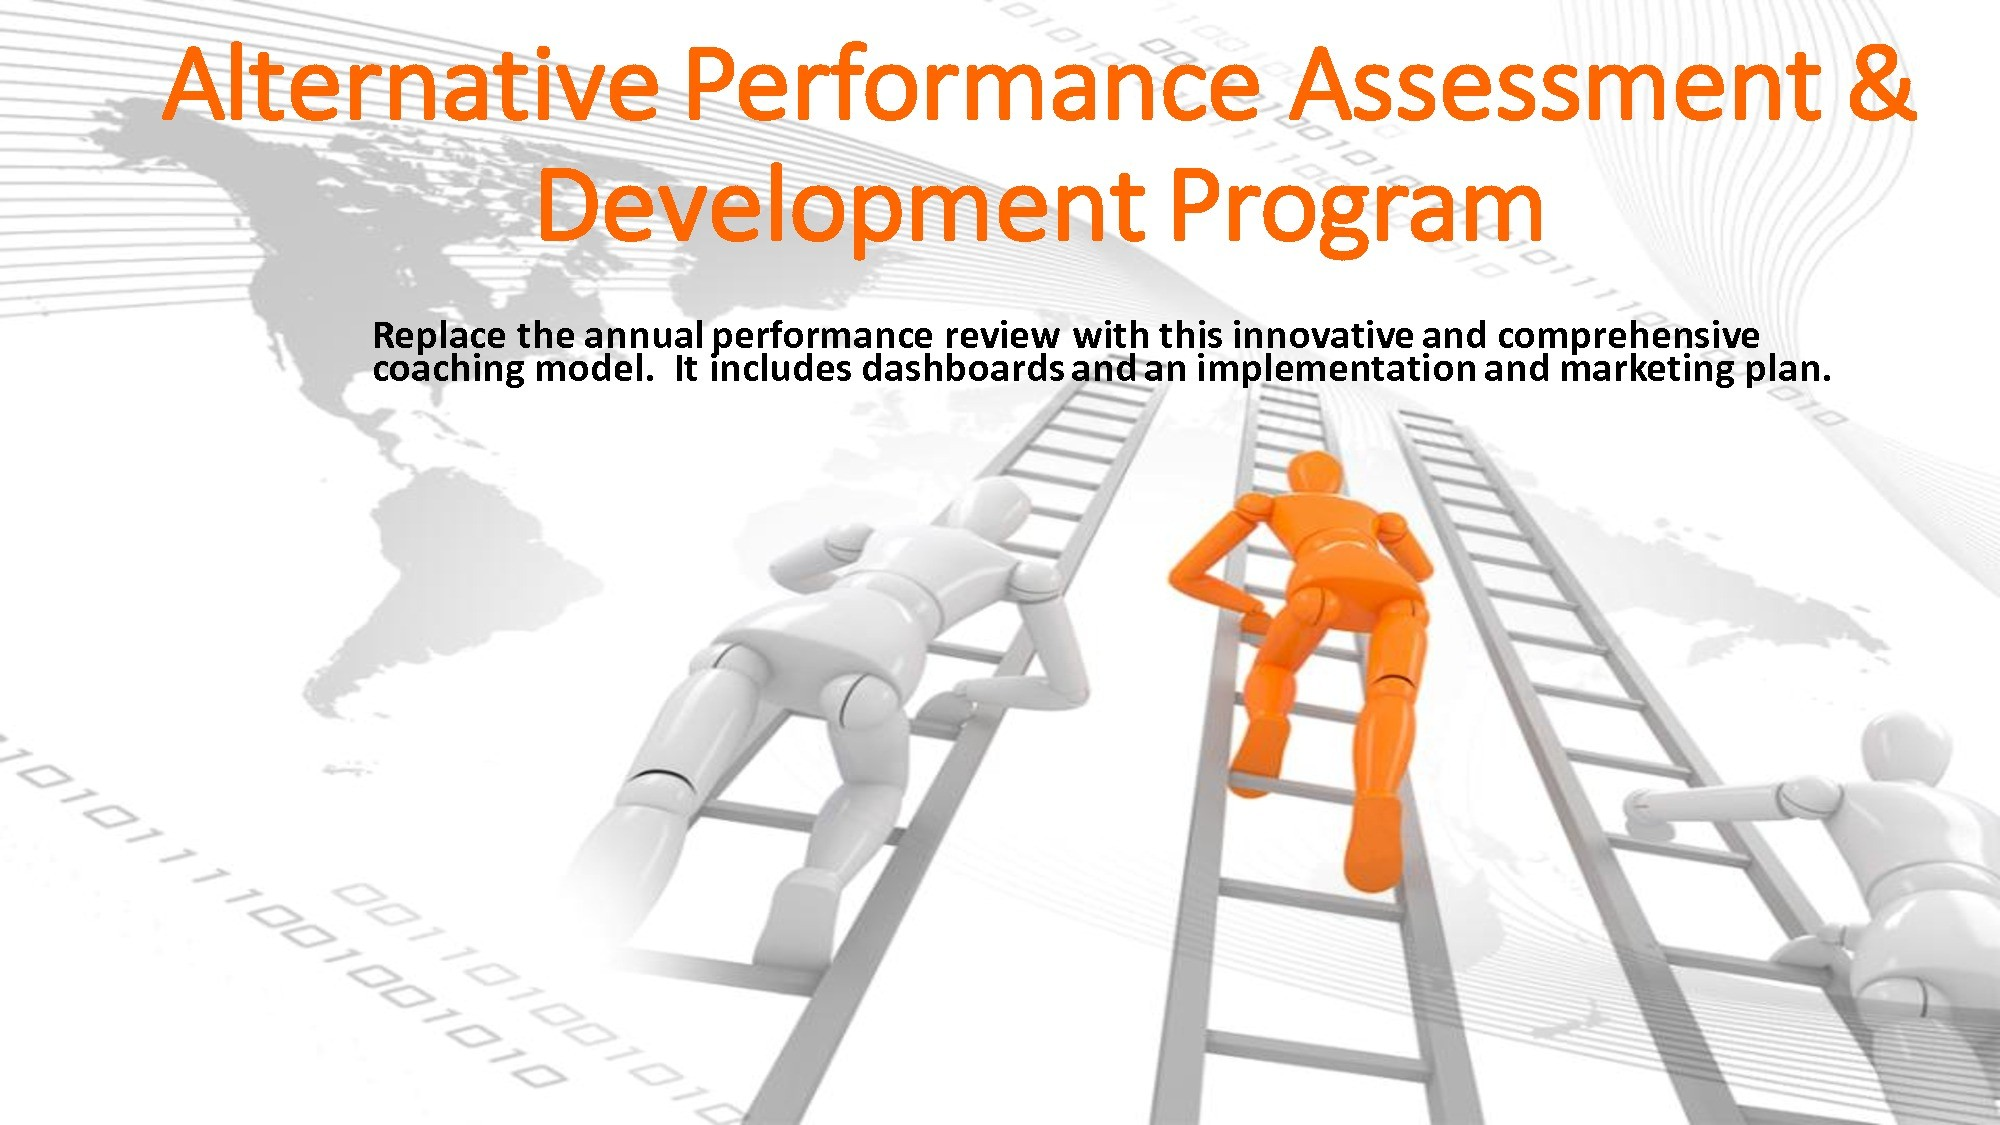 Performance Assessment & Development Alternative